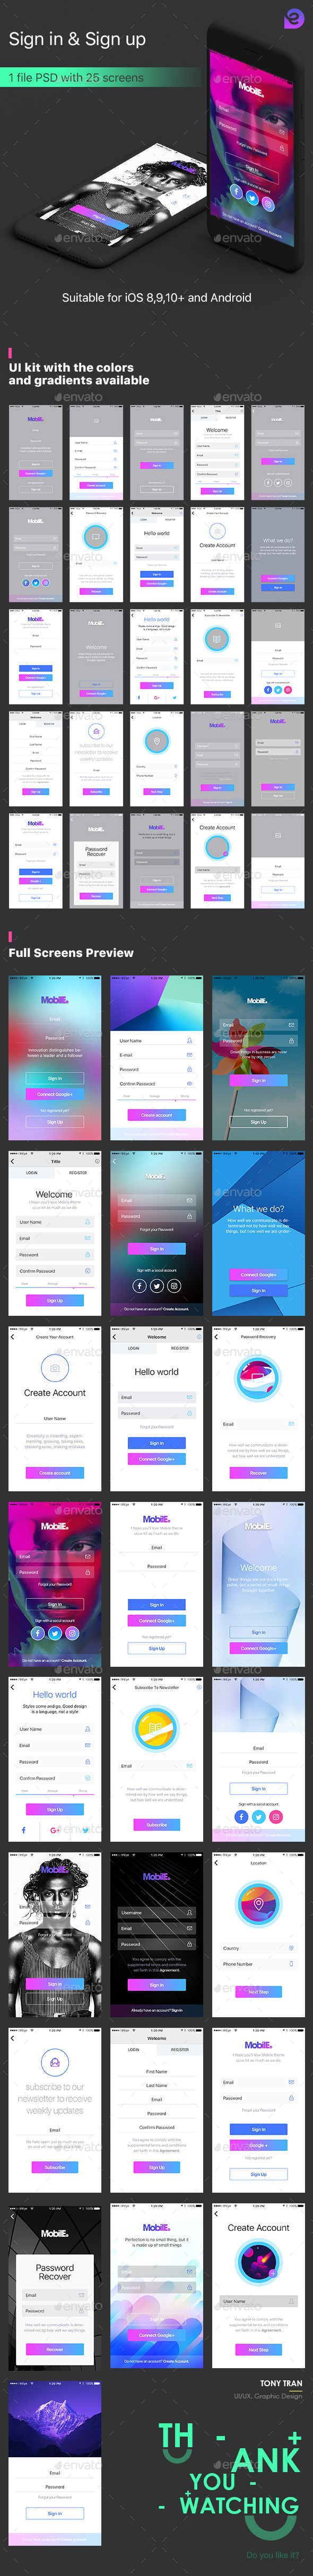 Smart Home App UI (User Interfaces)